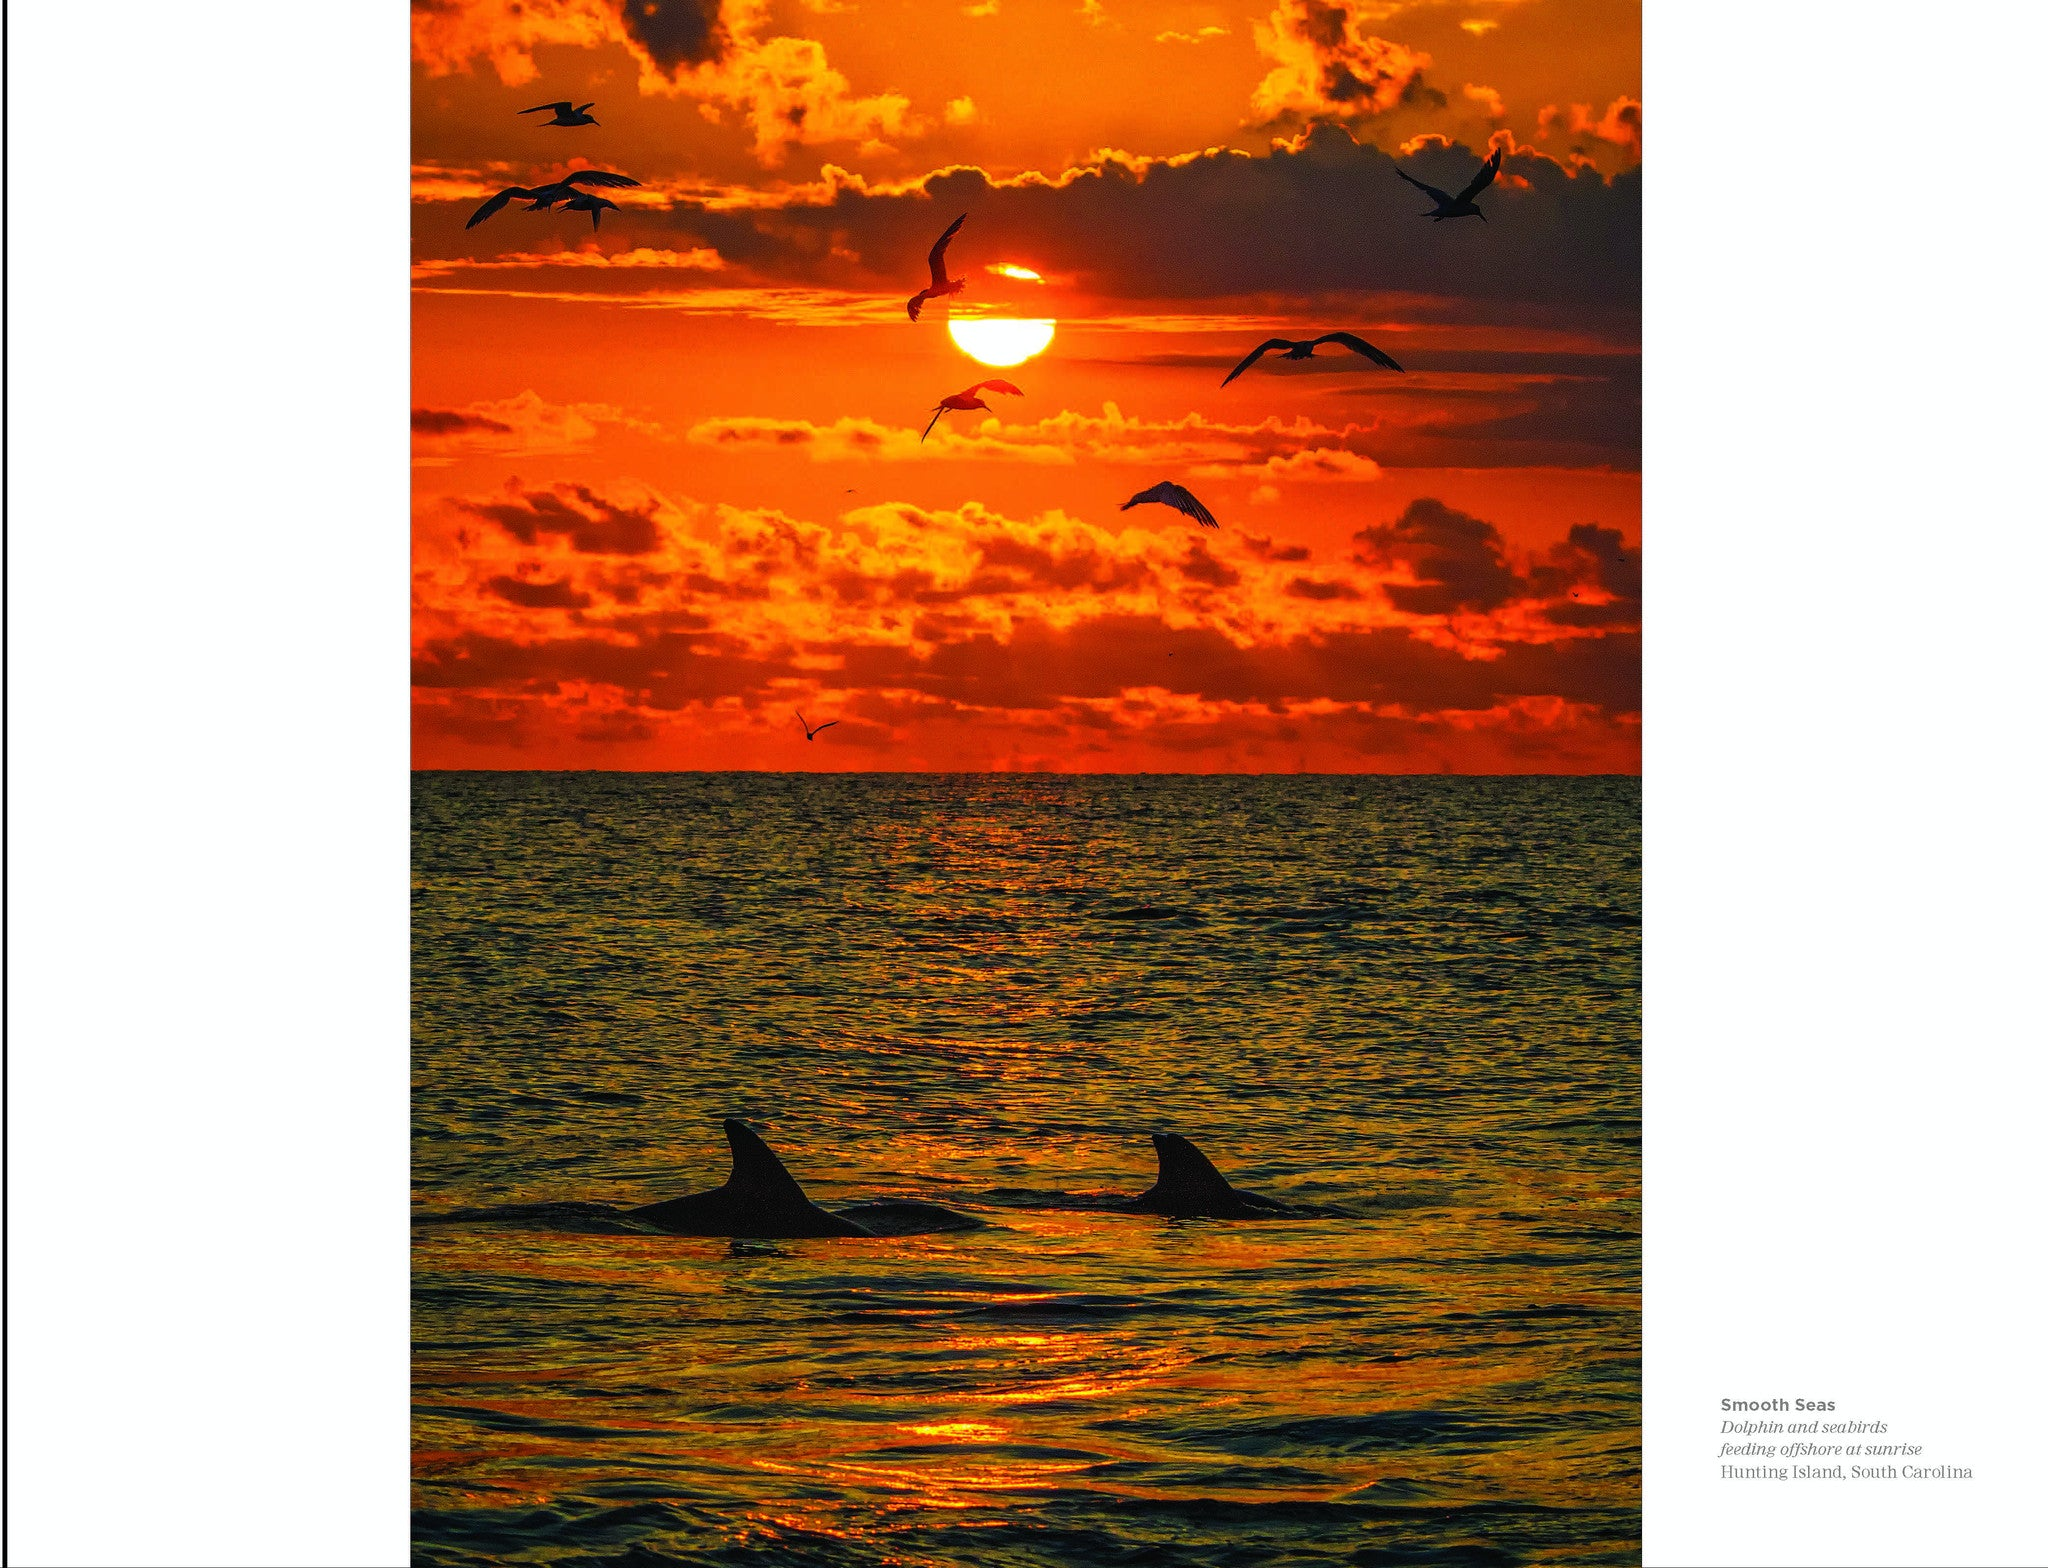 Smooth Seas: Dolphin and sea birds Hunting Island SC Beholding Nature Eric Horan photography book